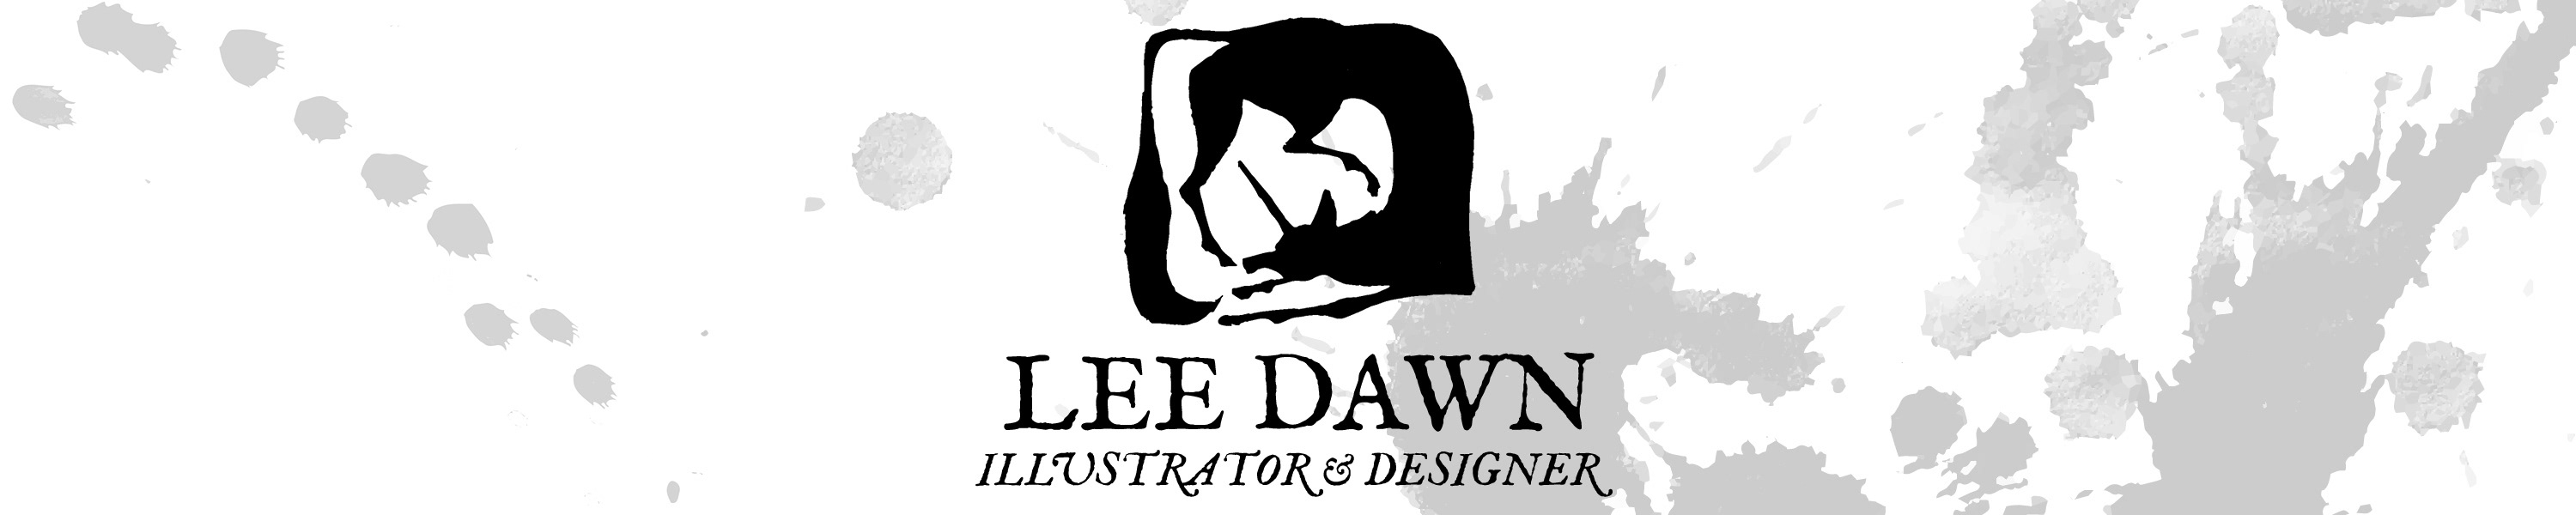 Lee Dawn Illustration